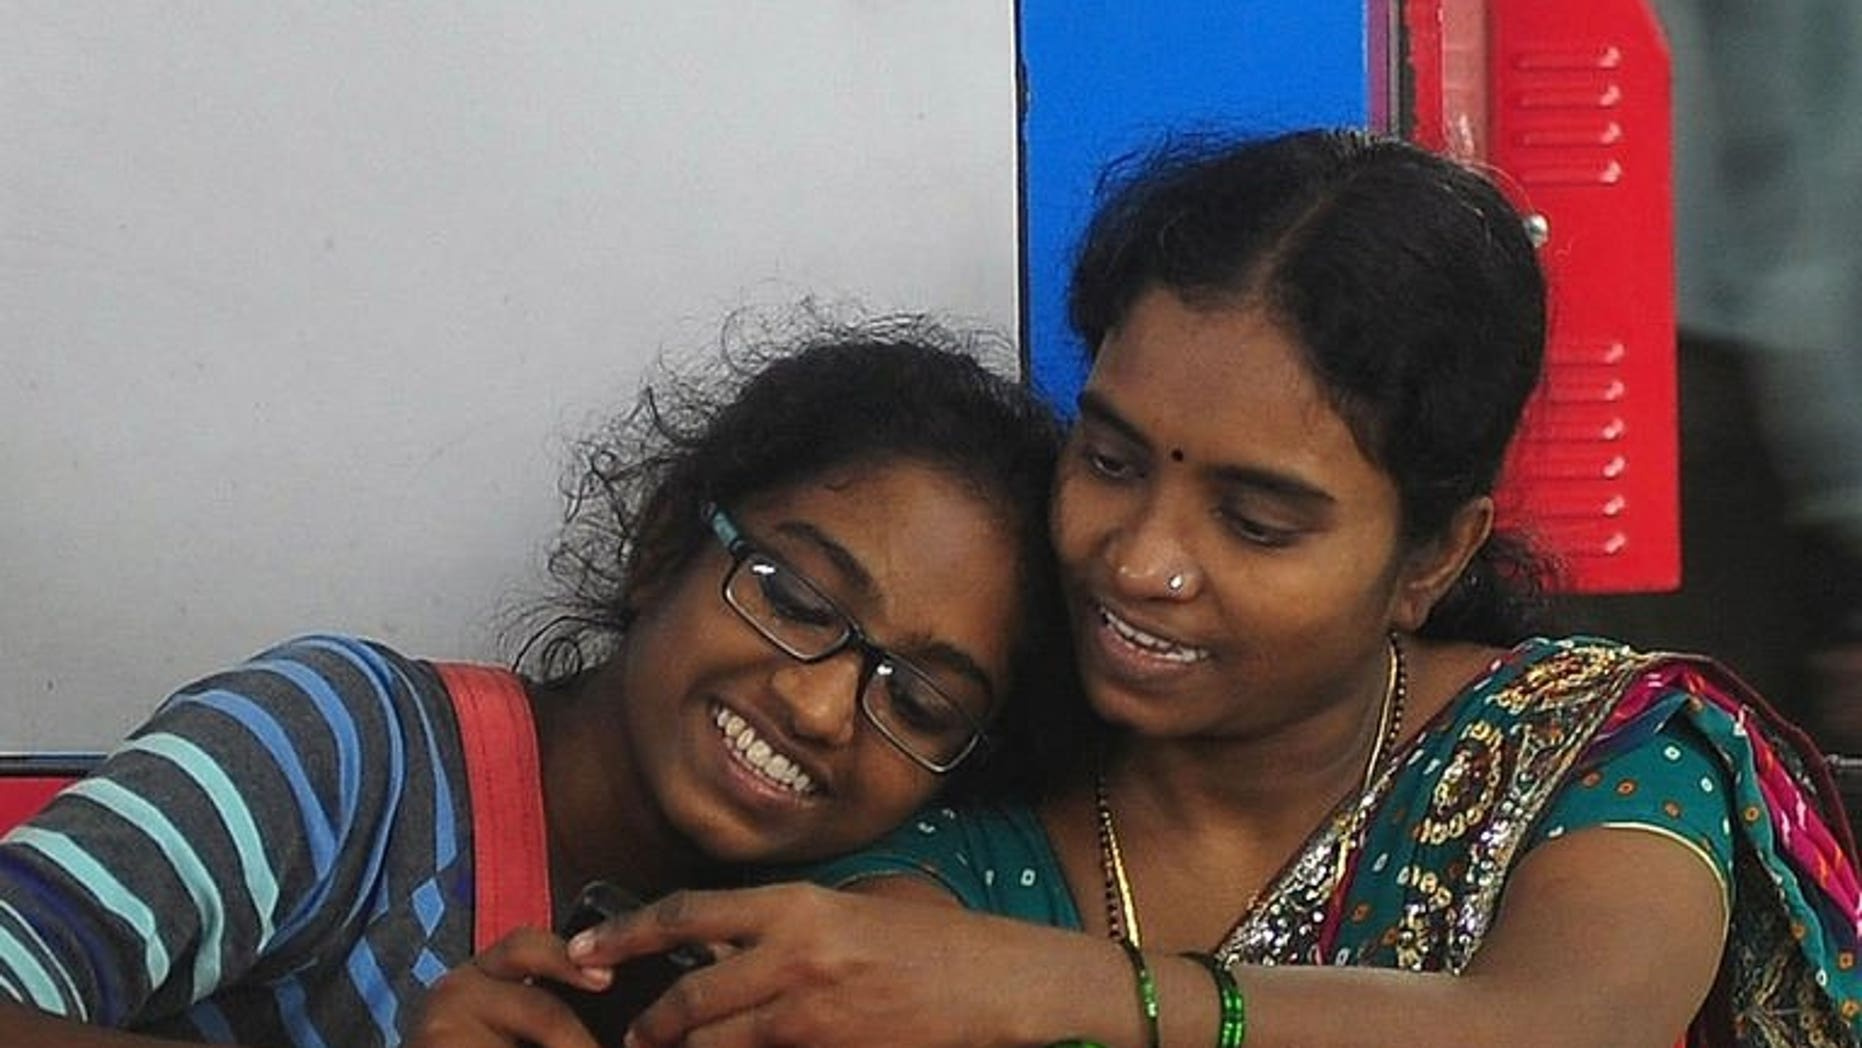 Shweta Katti (L) and her mother Vandana, pictured at a suburbun railway station in Mumbai, on July 30, 2013. Katti, 18, grew up in Mumbai's red-light district facing poverty and sexual abuse but, has overcome the odds to win a scholarship to study in New York, at the liberal arts Bard College, where she hopes to read psychology.